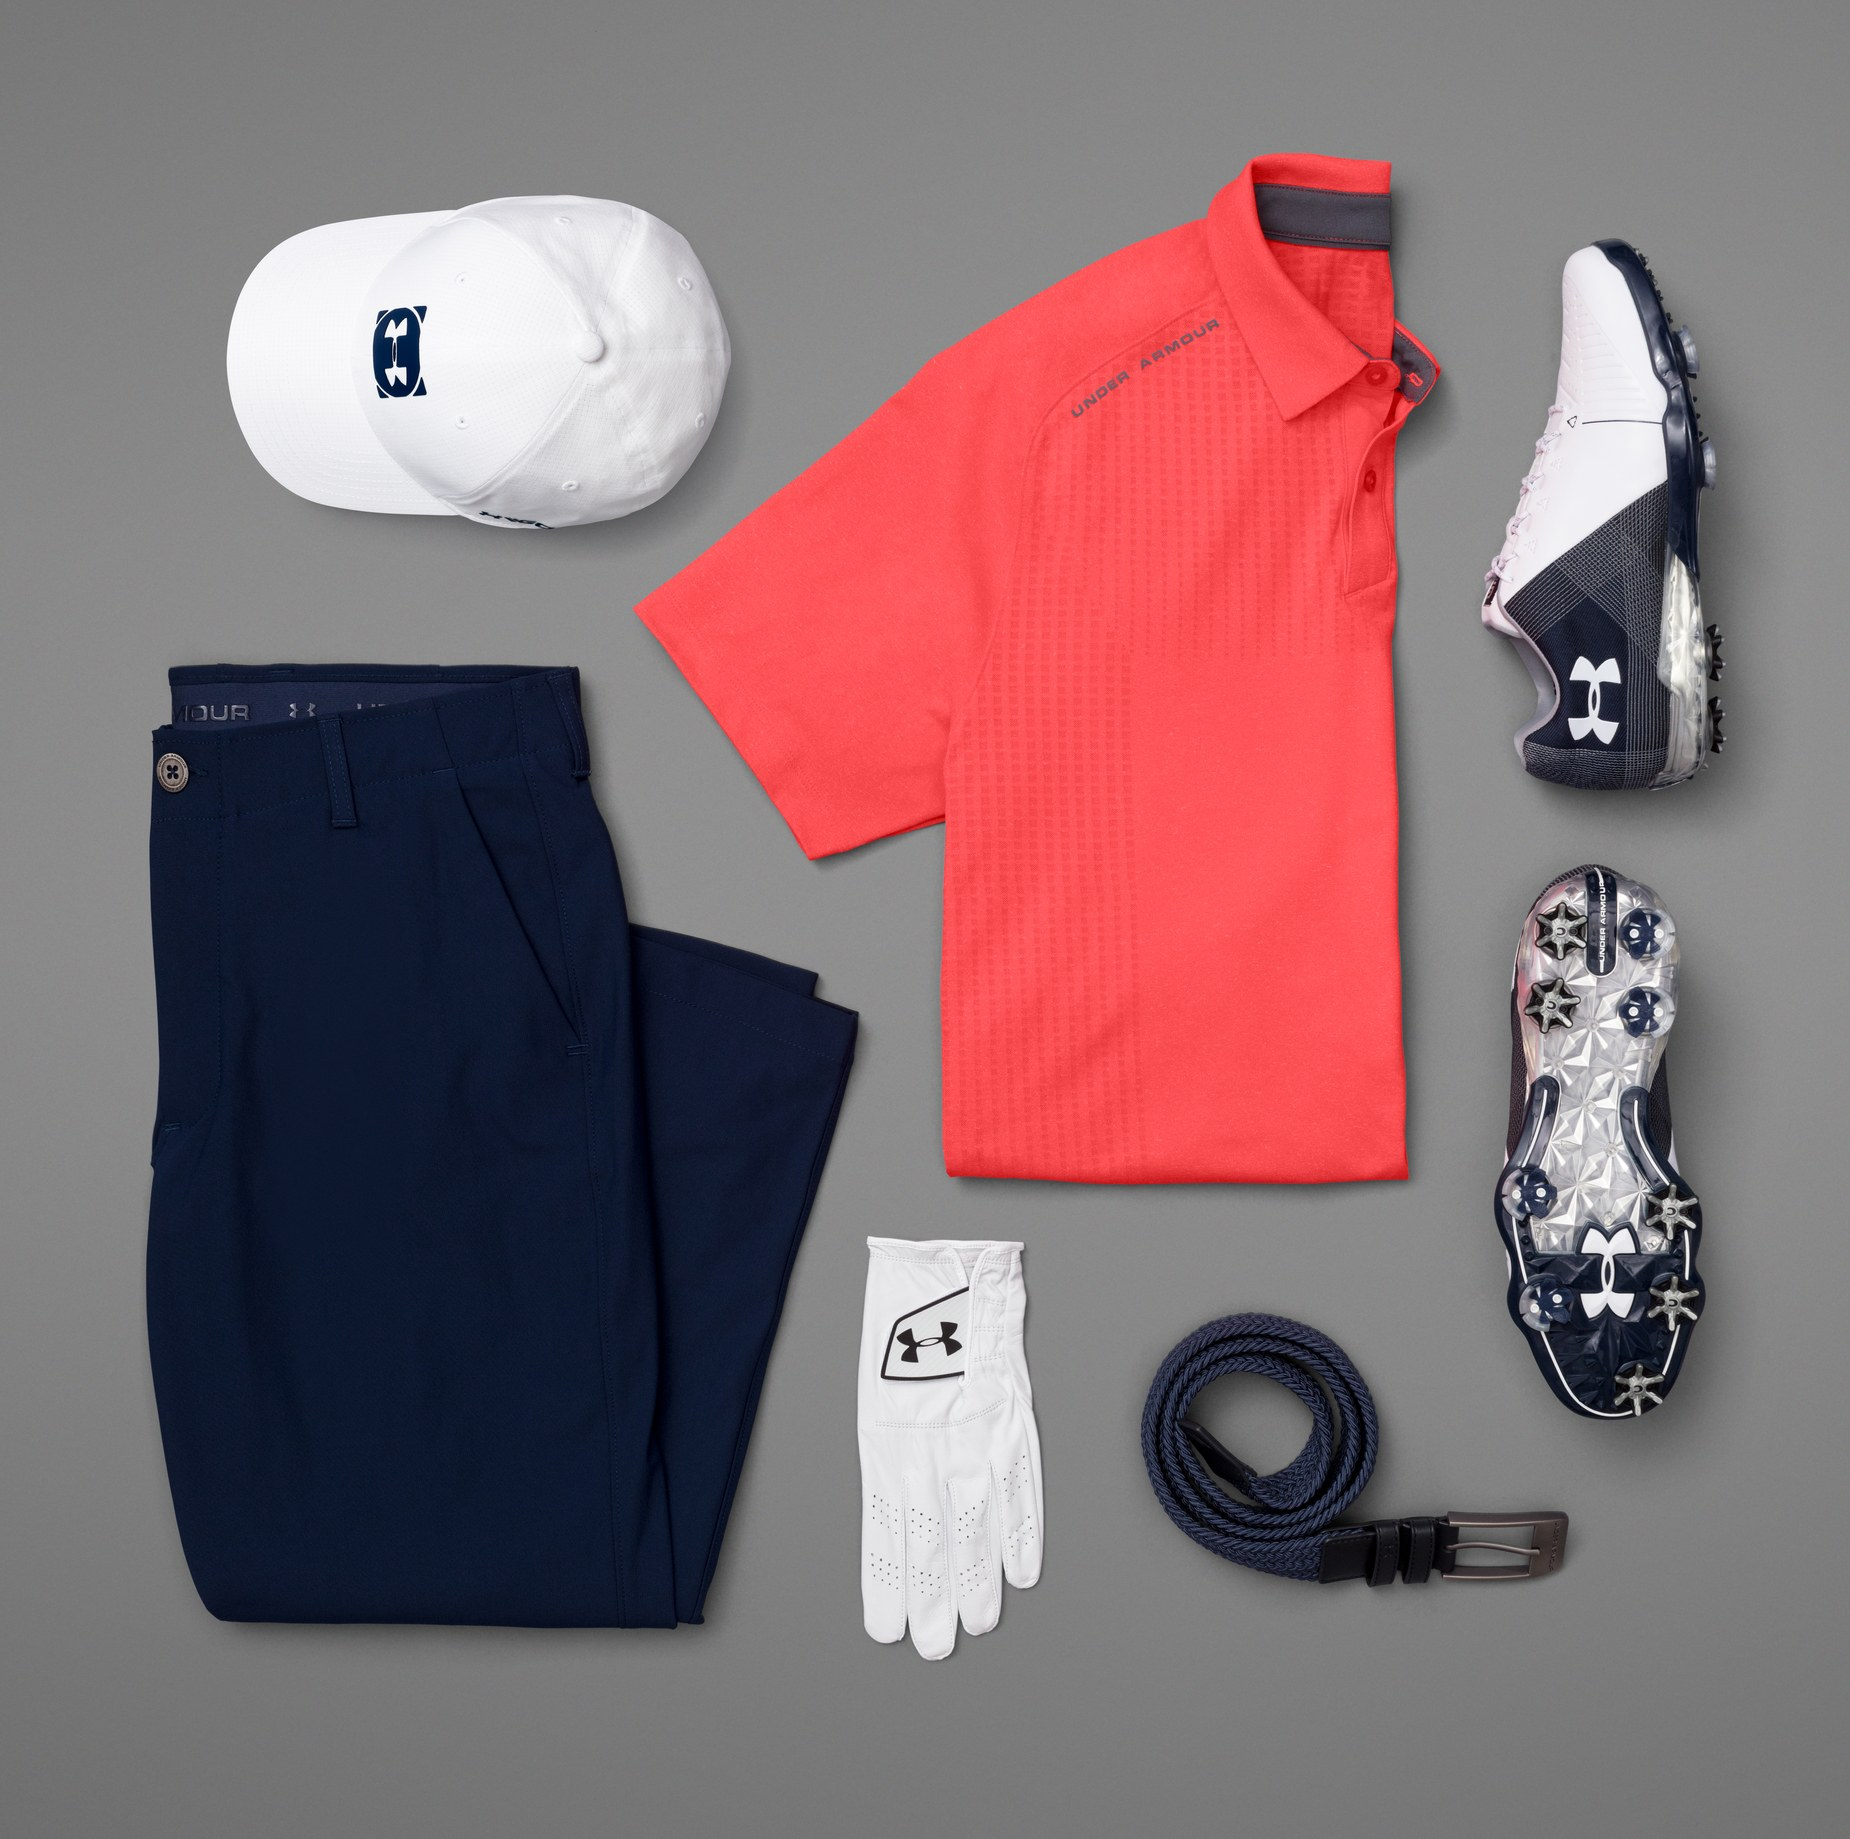 UA Kit for 2018 U.S. Open - Sunday